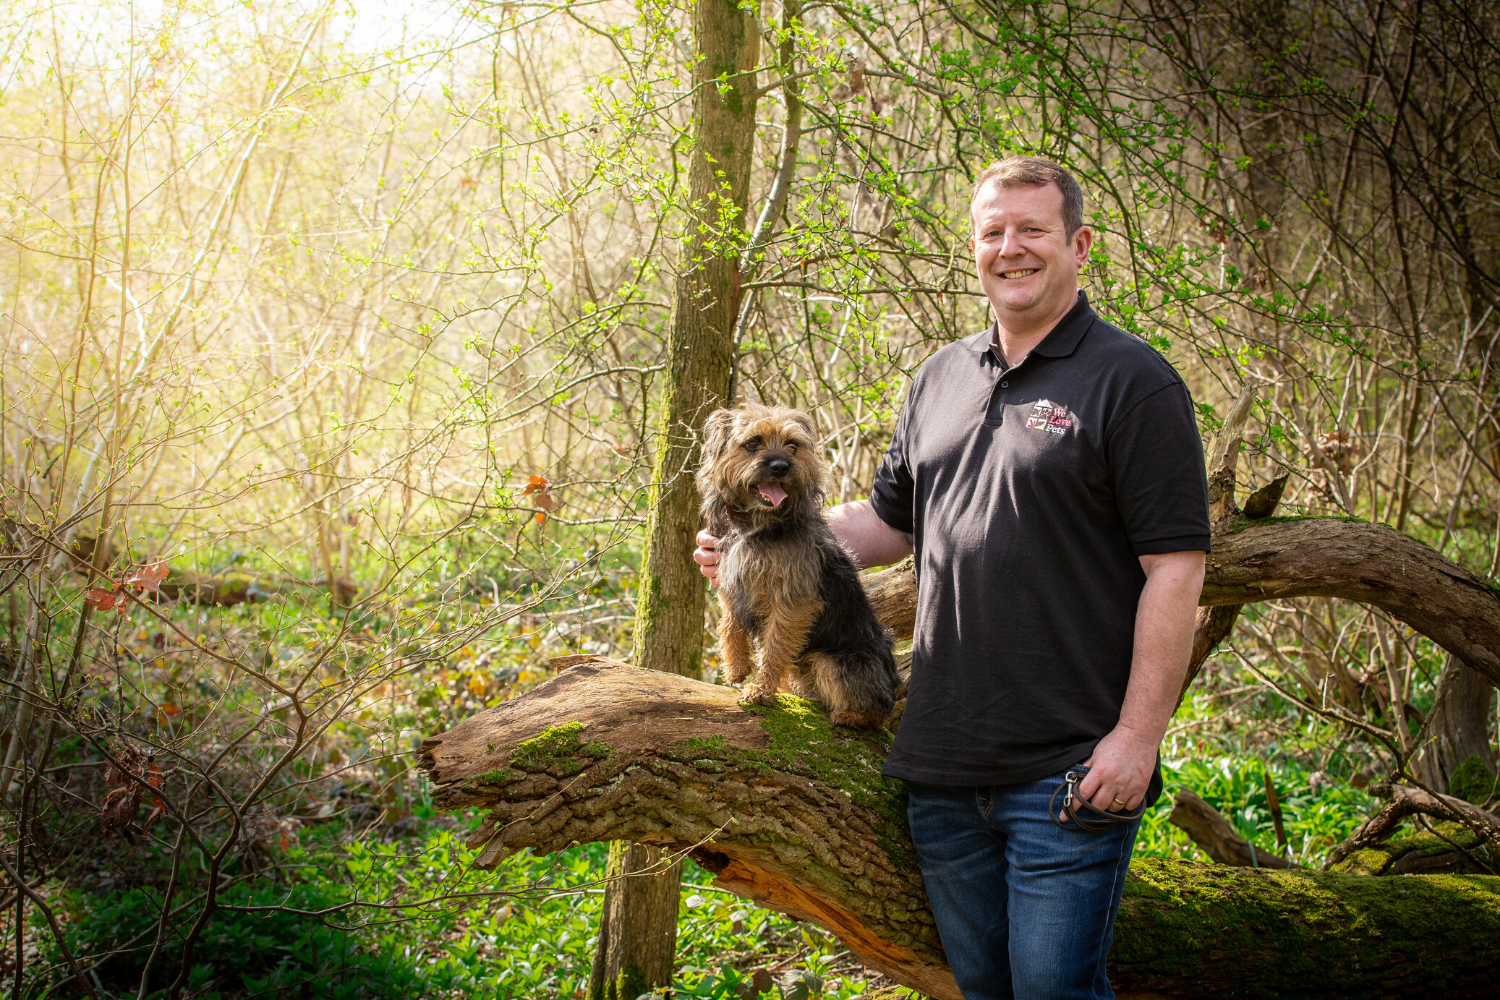 Dog walker and pet sitter for Rotherham. We treat your pet as if they were our own.